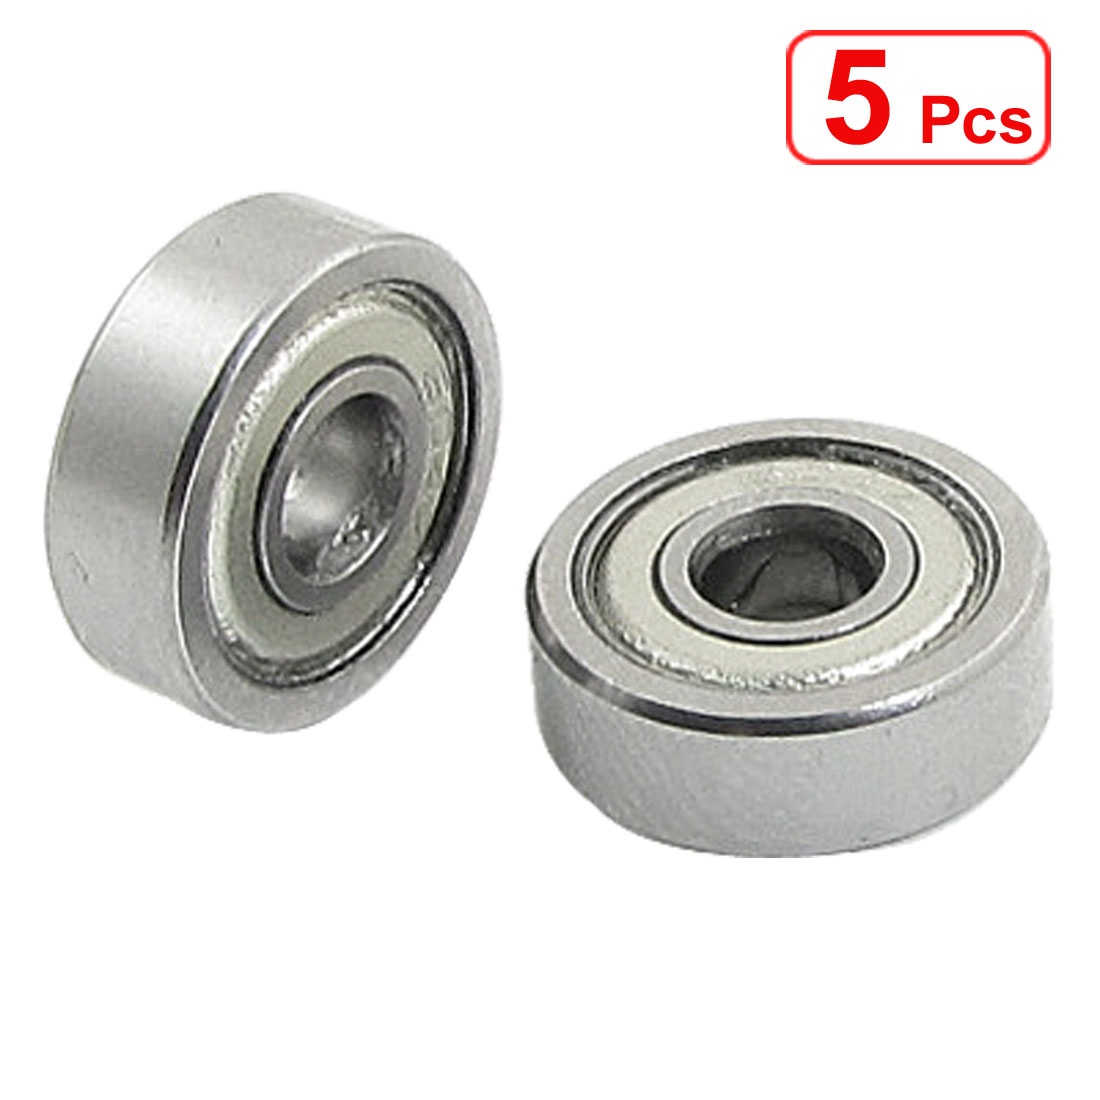 5 Pcs 604Z 4 x 12 x 4mm Shielded Miniature Ball Bearings